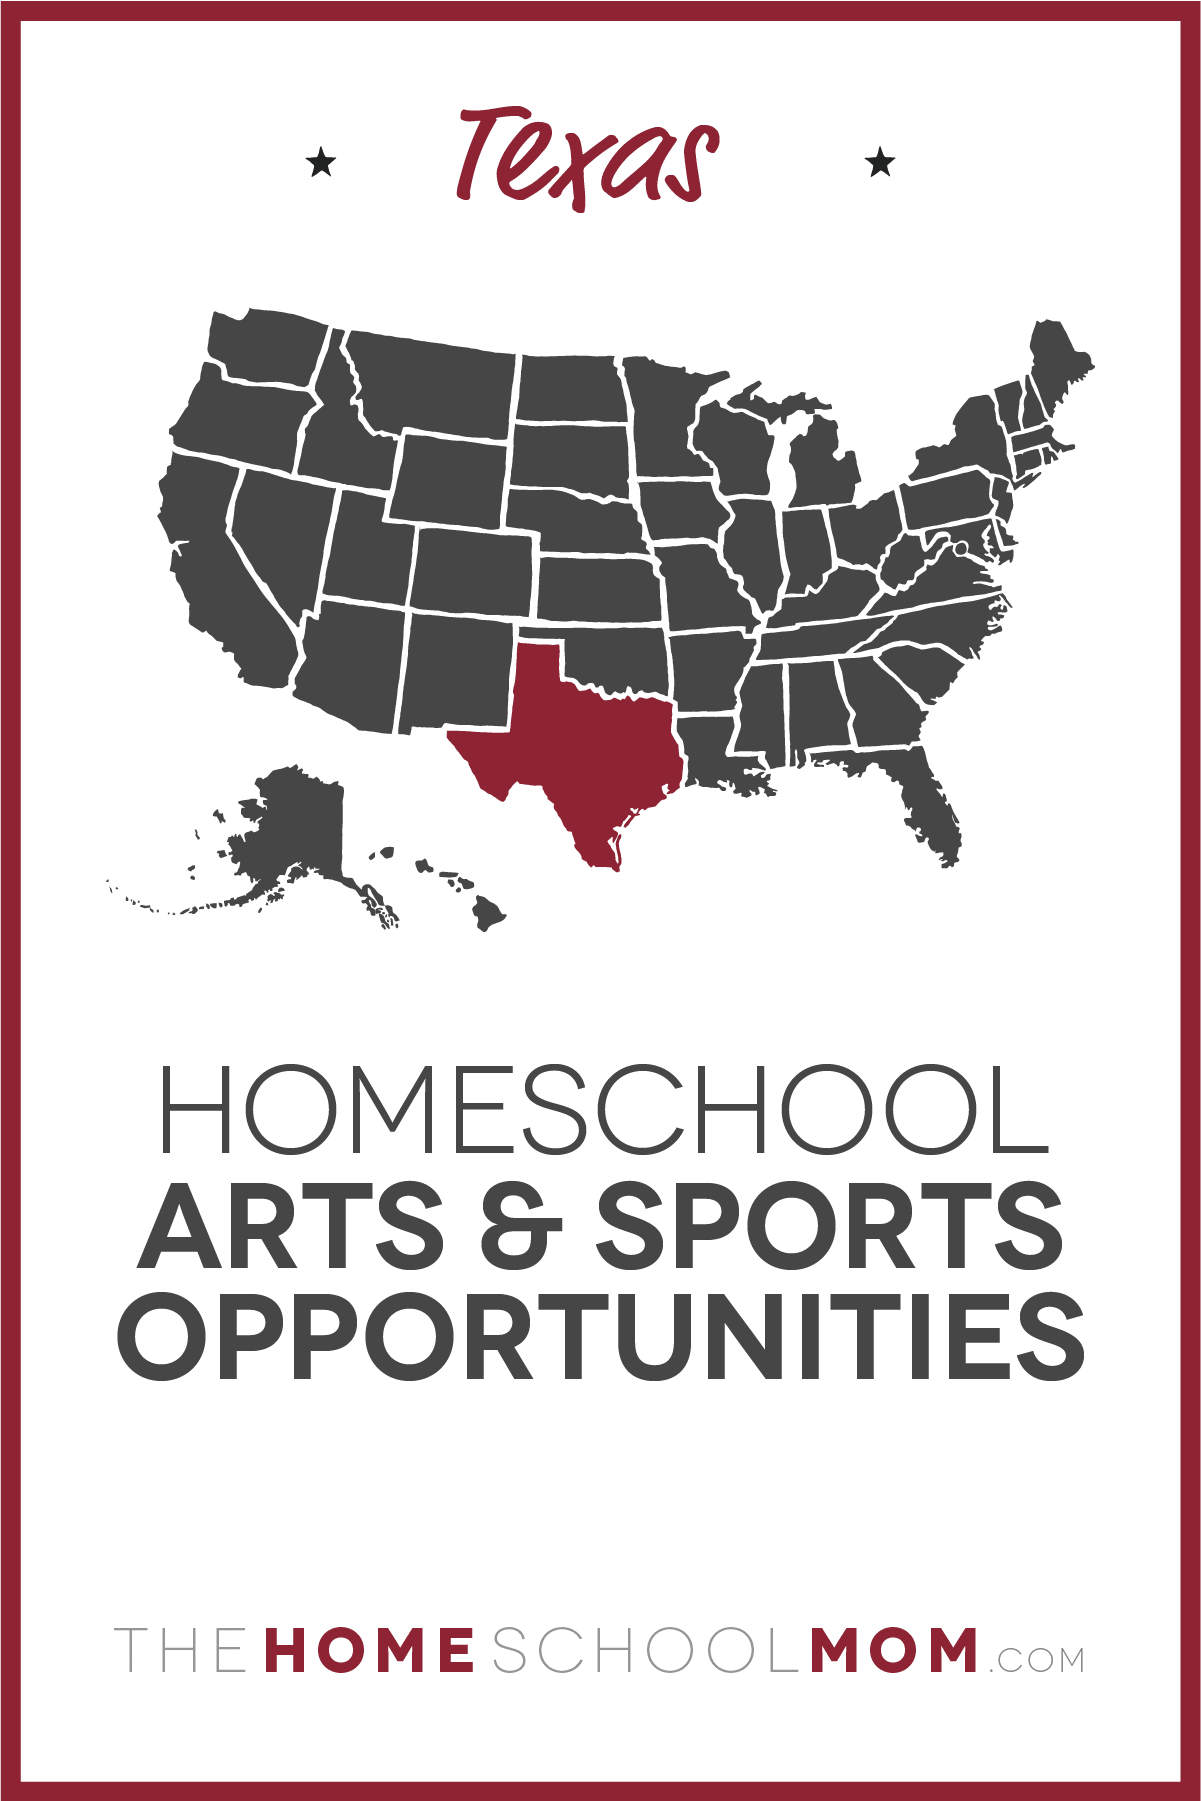 map of the US with Texas highlighted and text Texas Homeschool Arts & Sports